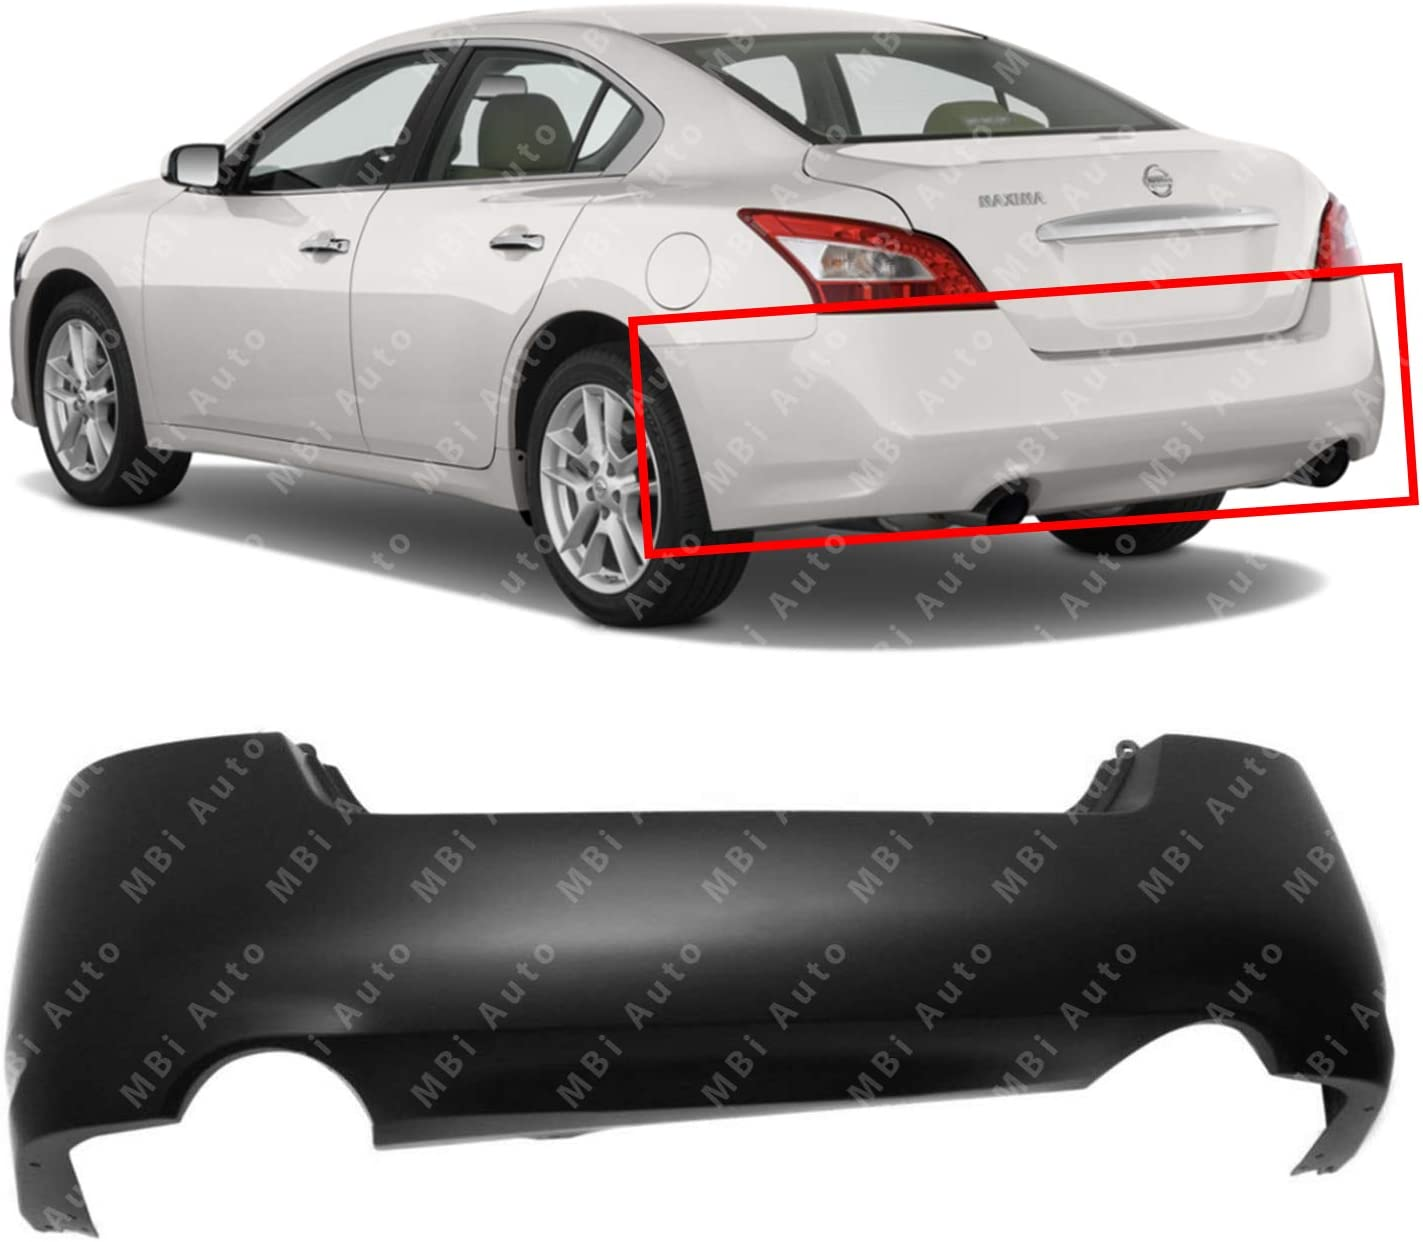 MBI AUTO - Primered, Rear Bumper Cover Direct Replacement for 2009-2014 Nissan Maxima 09-14, NI1100264